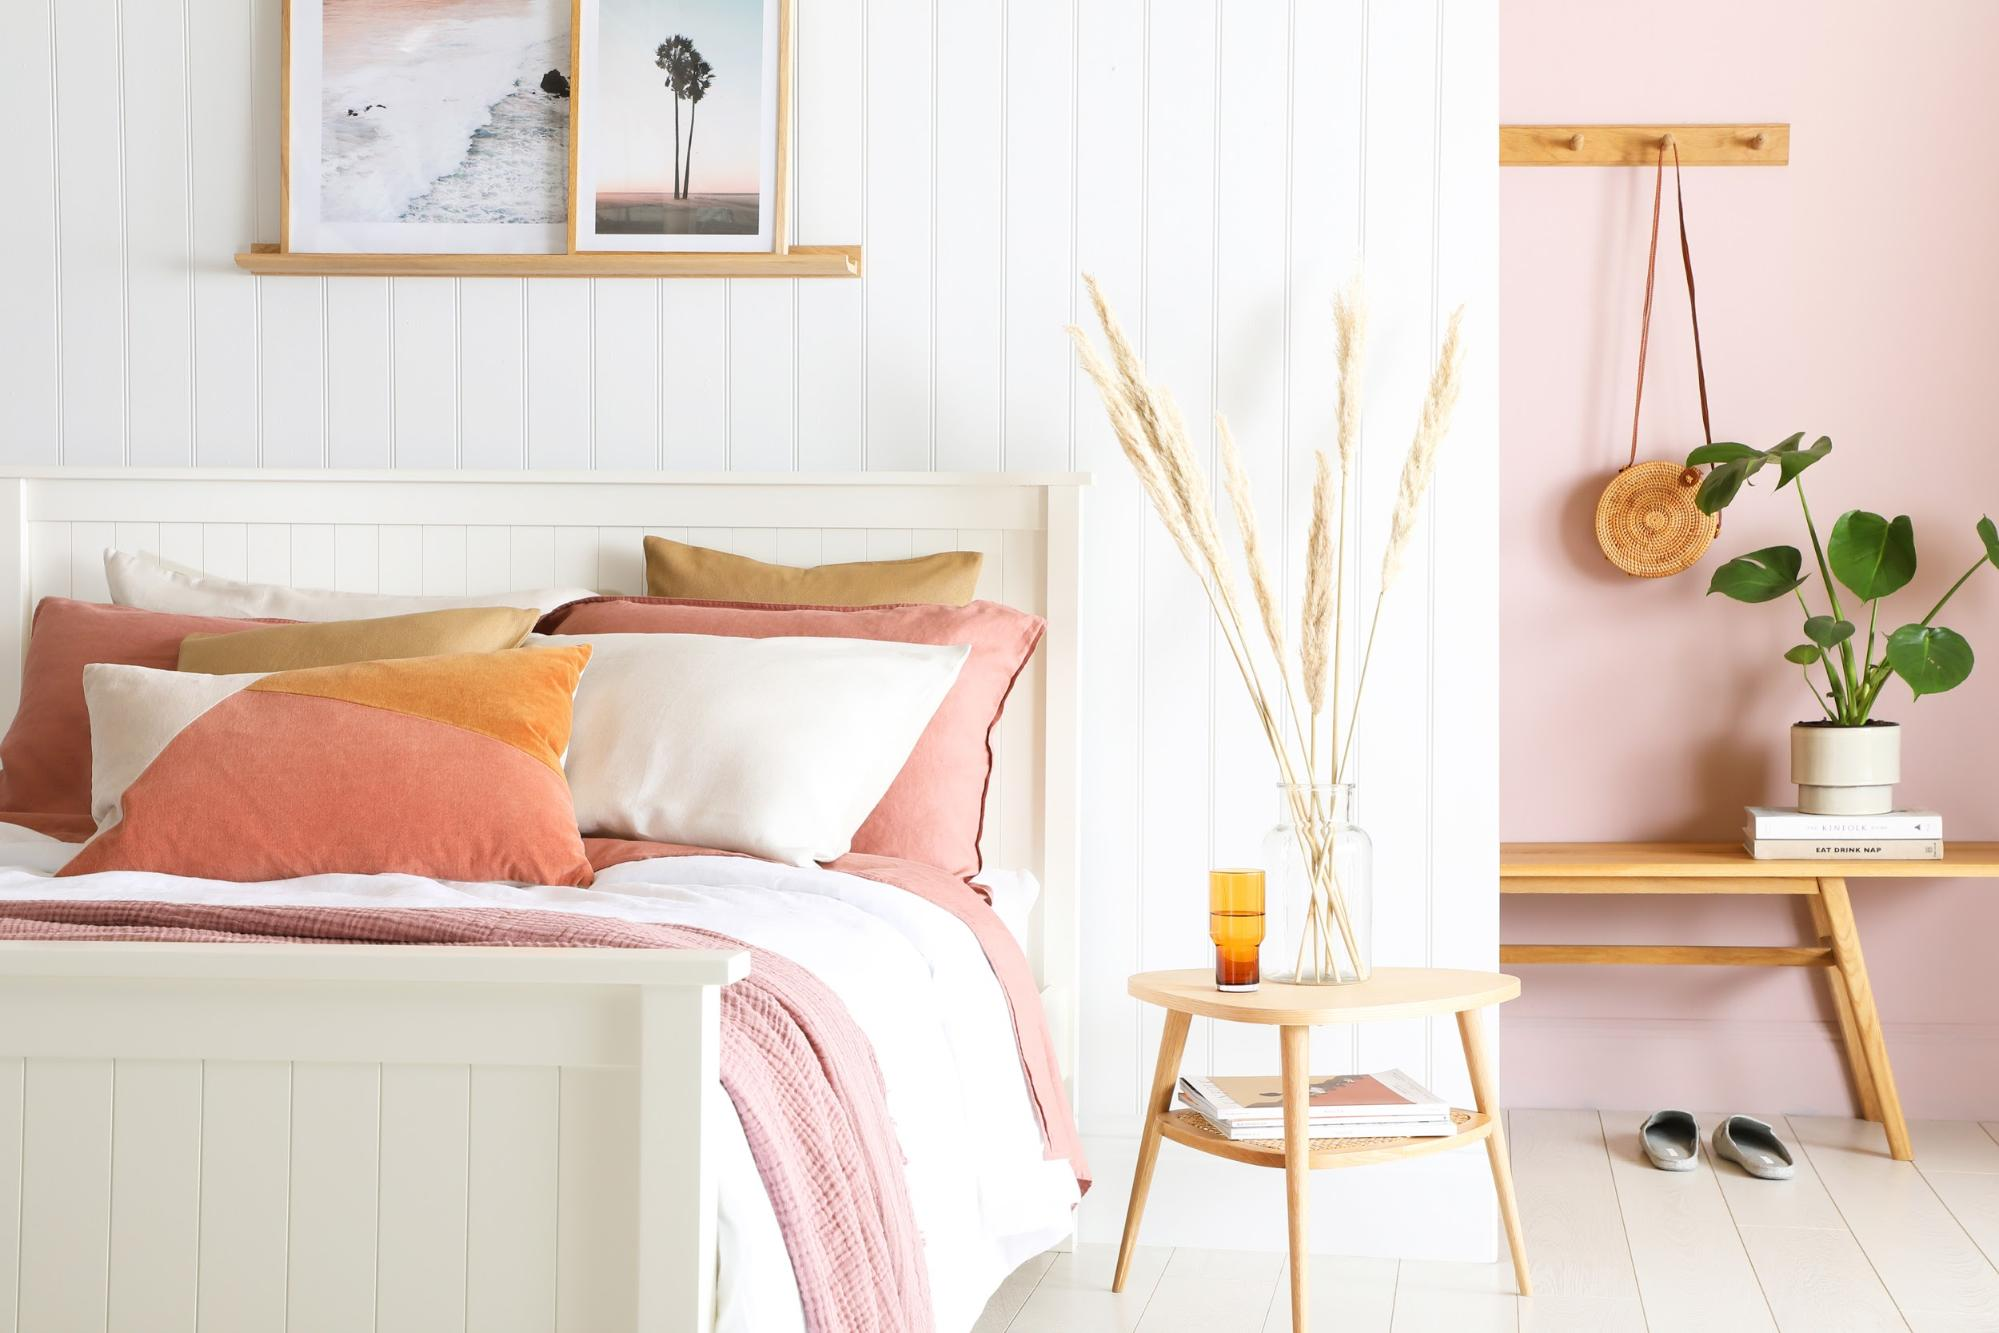 Bedroom with white wall panels and pink touches